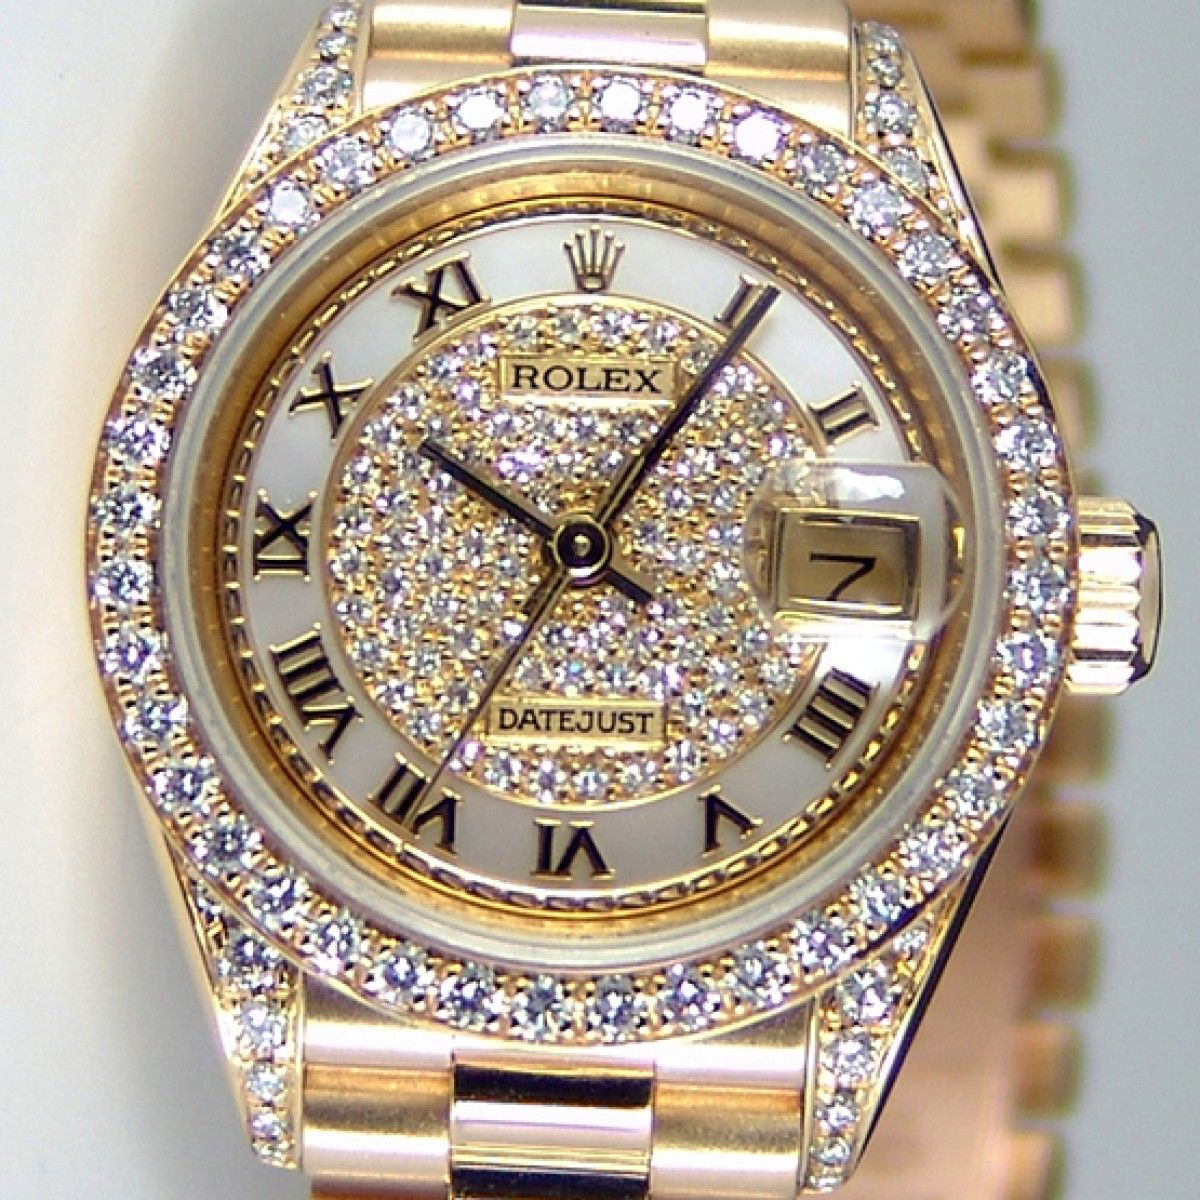 Rolex Lady President Gold Pave Diamond 69158 Watch Chest Watches Jewelry Diamond Watch Rolex